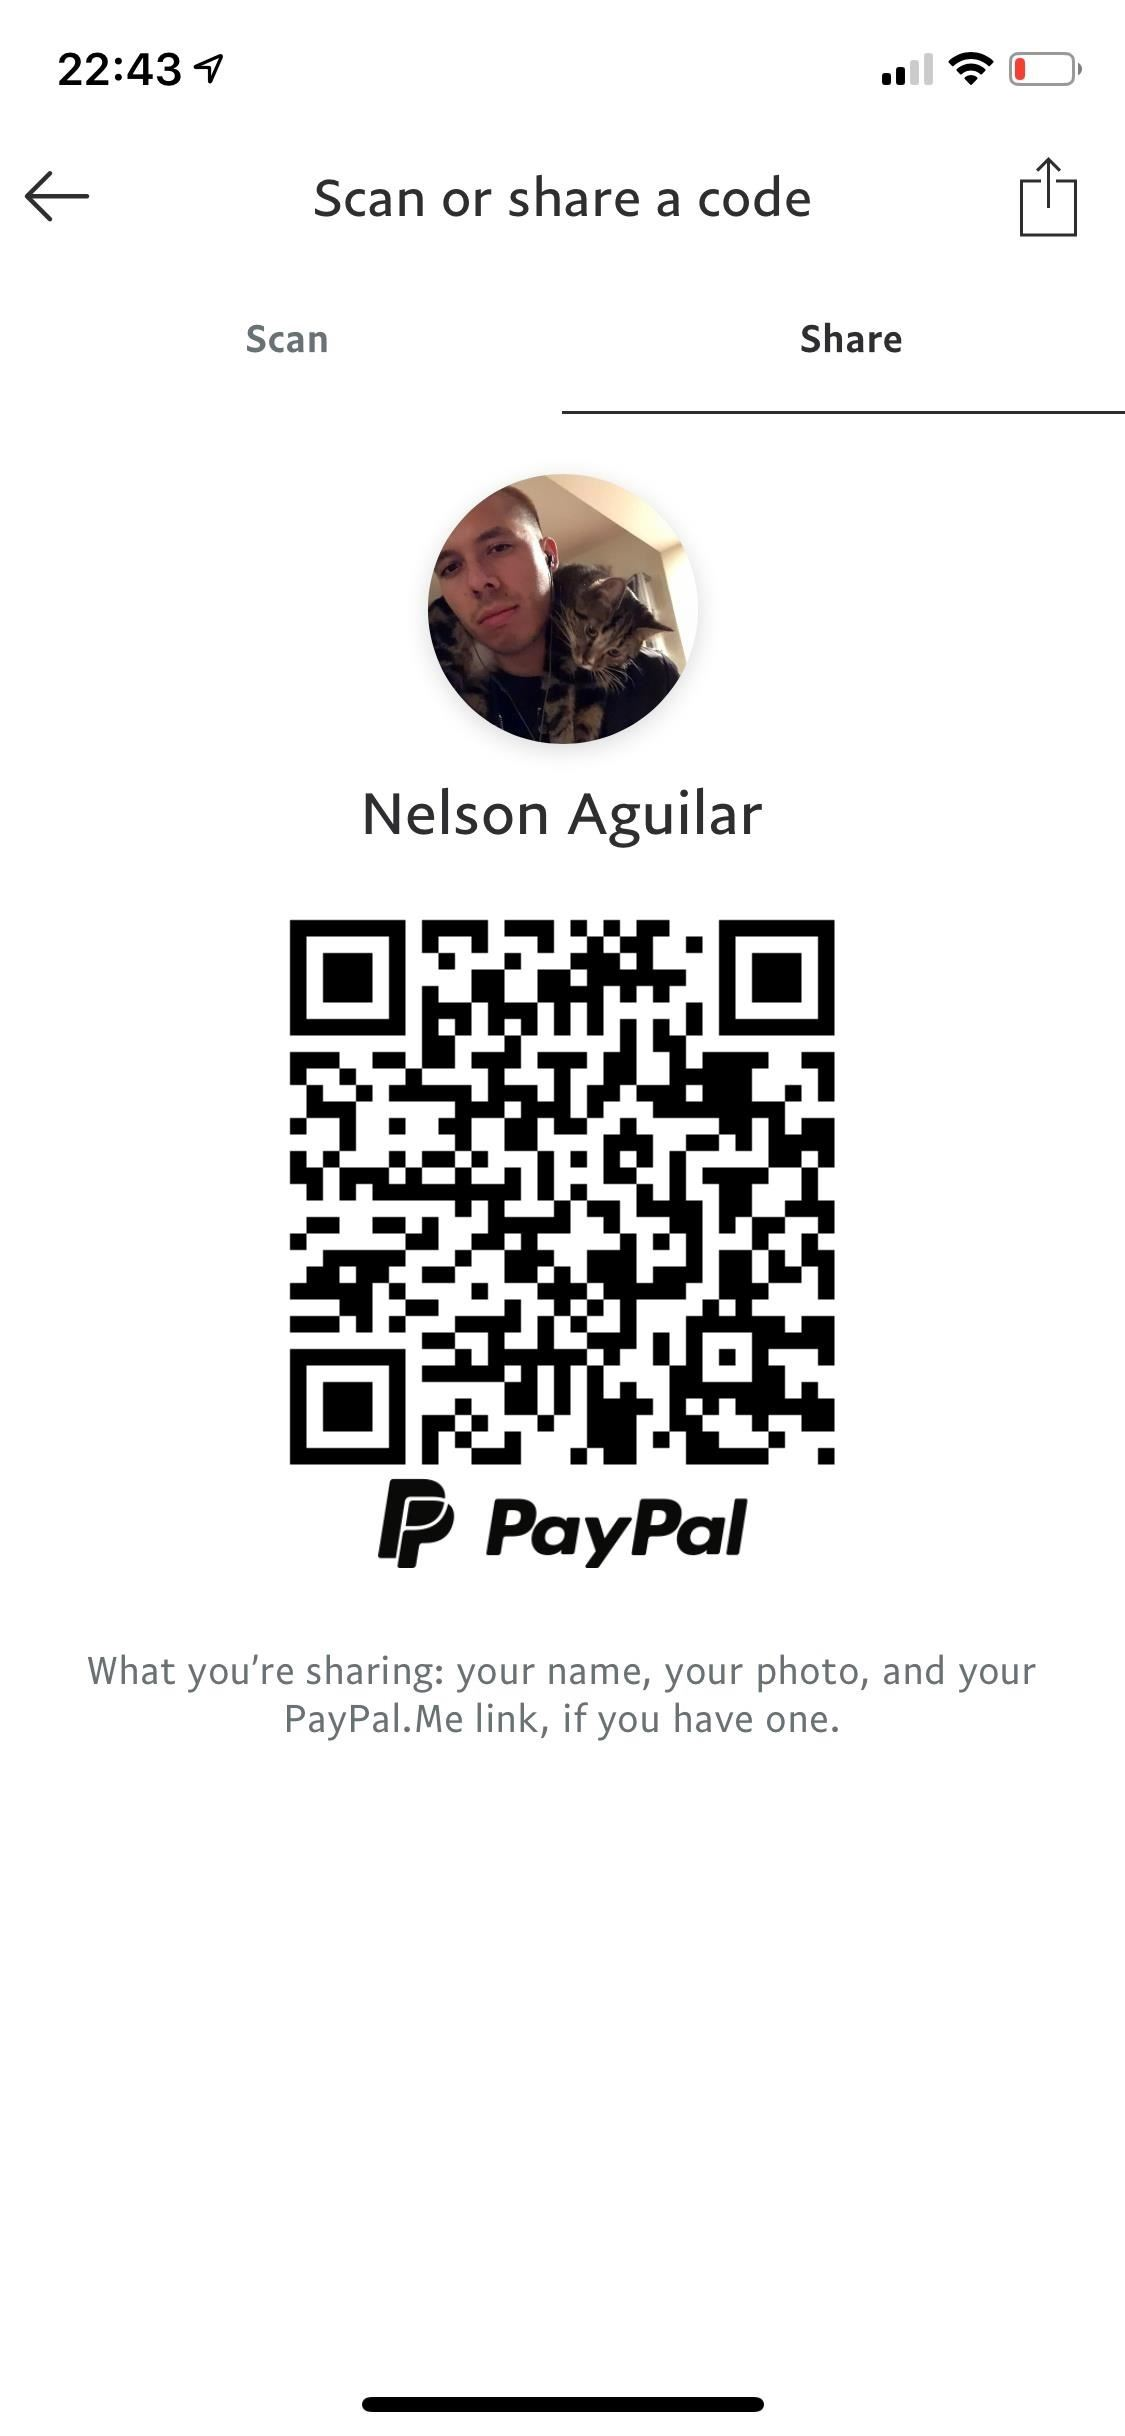 How to Share & Scan PayPal QR Codes for Faster